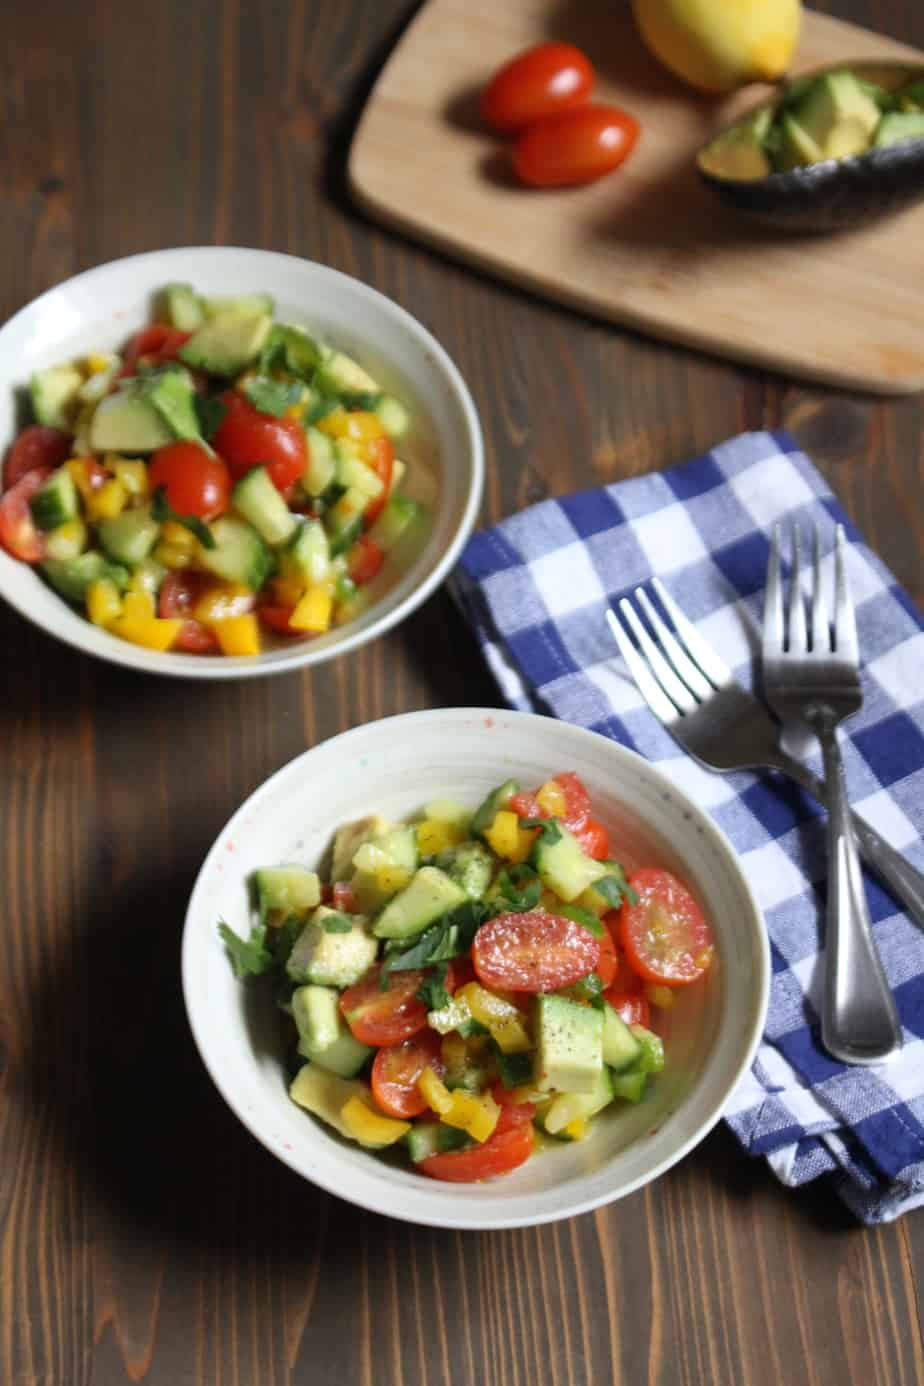 Easy Summery Vegetable Salad with Avocado | Frugal Nutrition #whole30